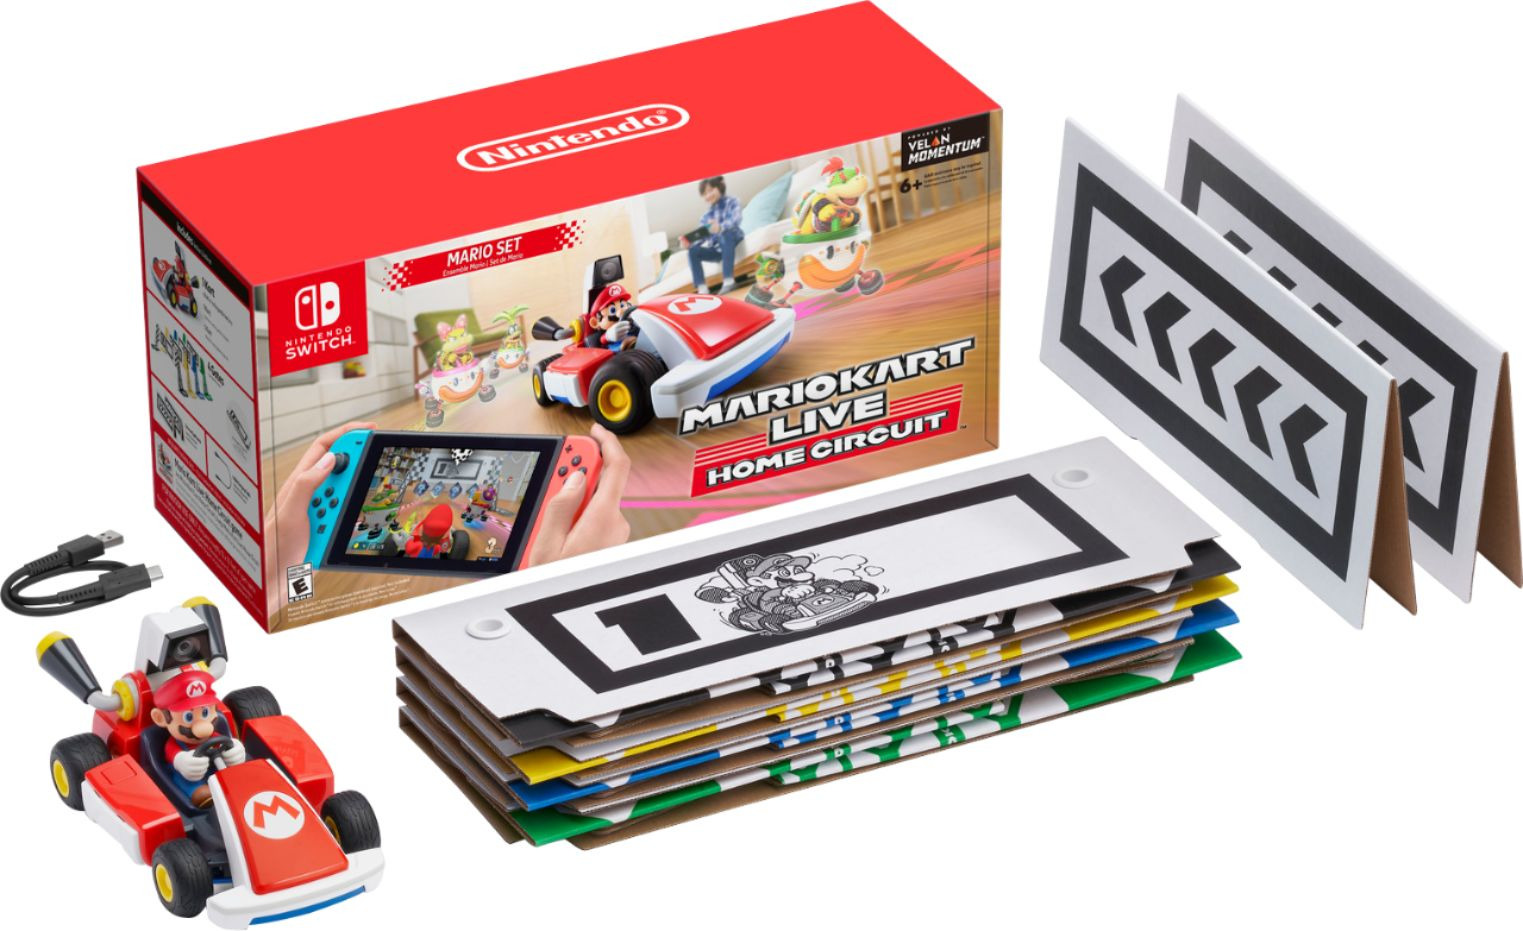 Mario Kart Live Home Circuit  Mario Set Switch - Switch - Andet -  - 0045496426262 -